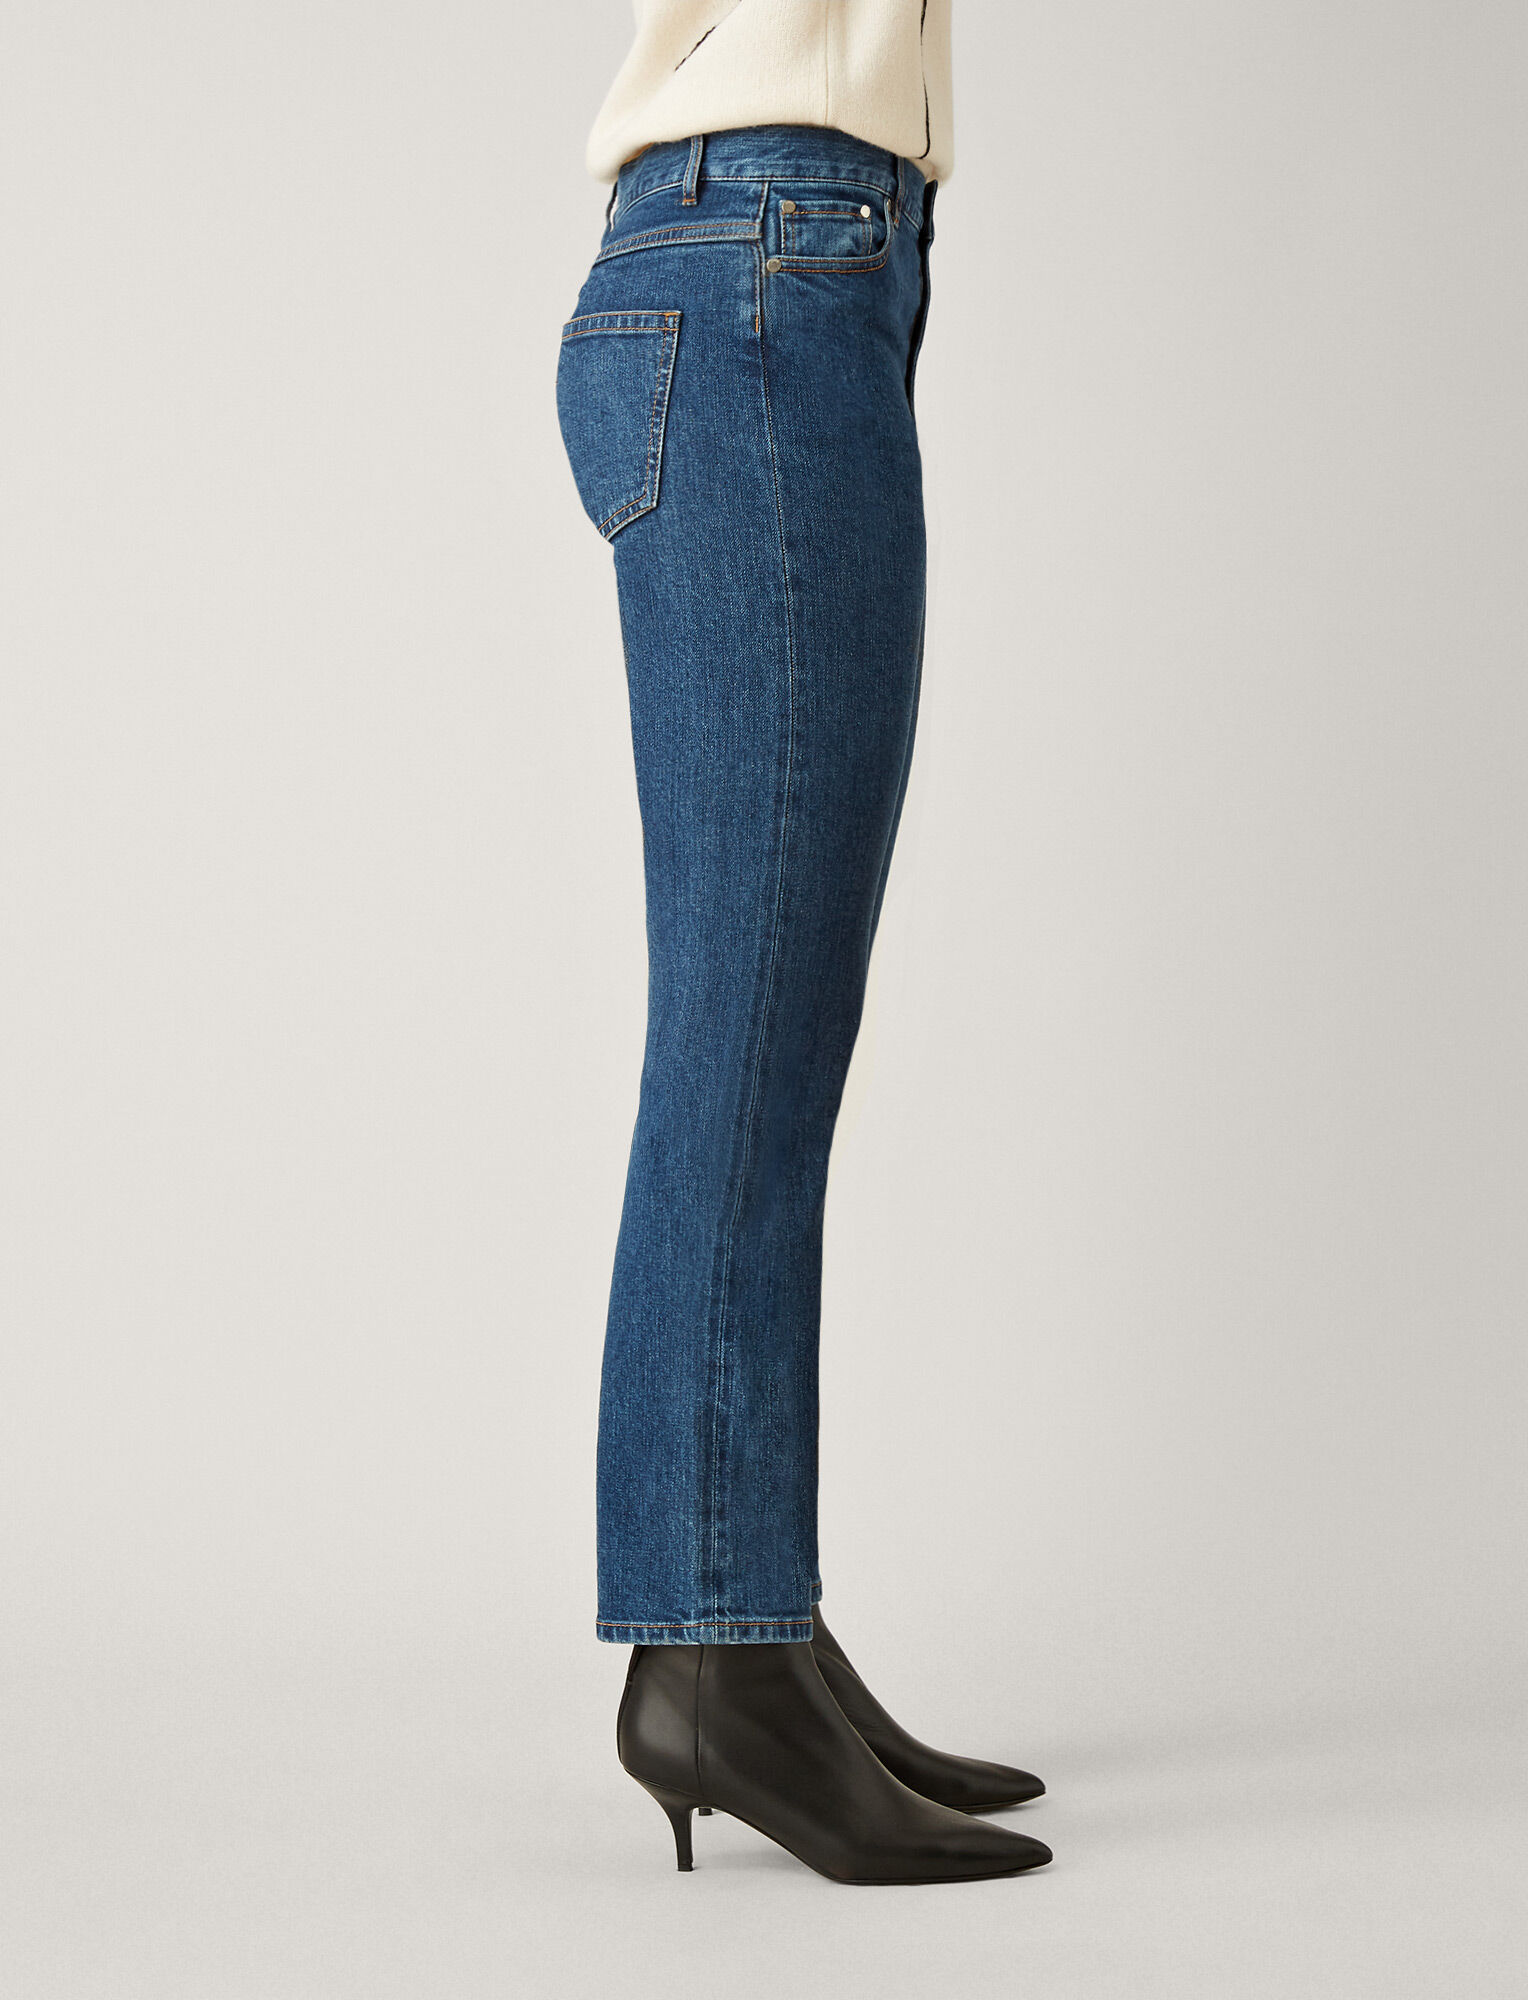 Joseph, Pantalon Den en denim, in AUTHENTIC BLUE